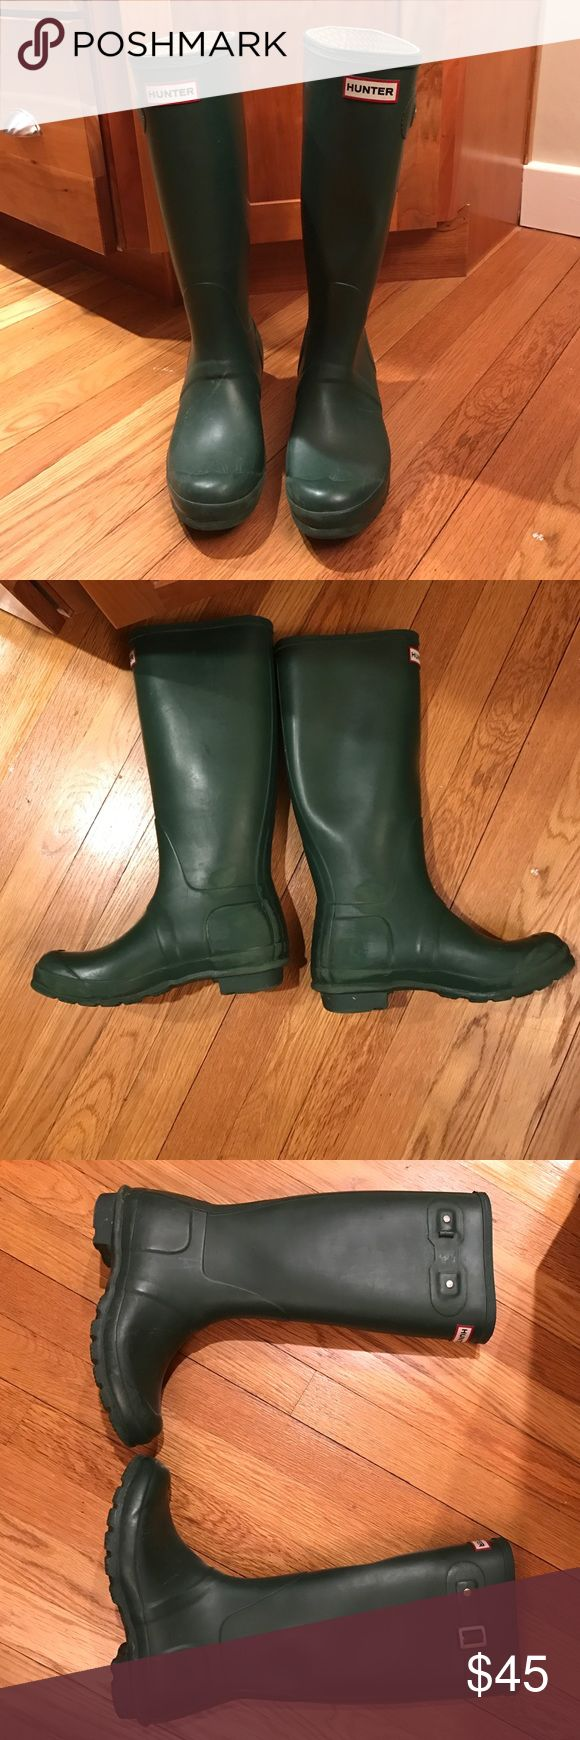 Women's Hunter Boots Tall Forest Green Size 7 Love these boots! Only selling because I need a bigger size. Right boot buckle is missing and some wear on the inside of both heels. Hunter Boots Shoes Winter & Rain Boots